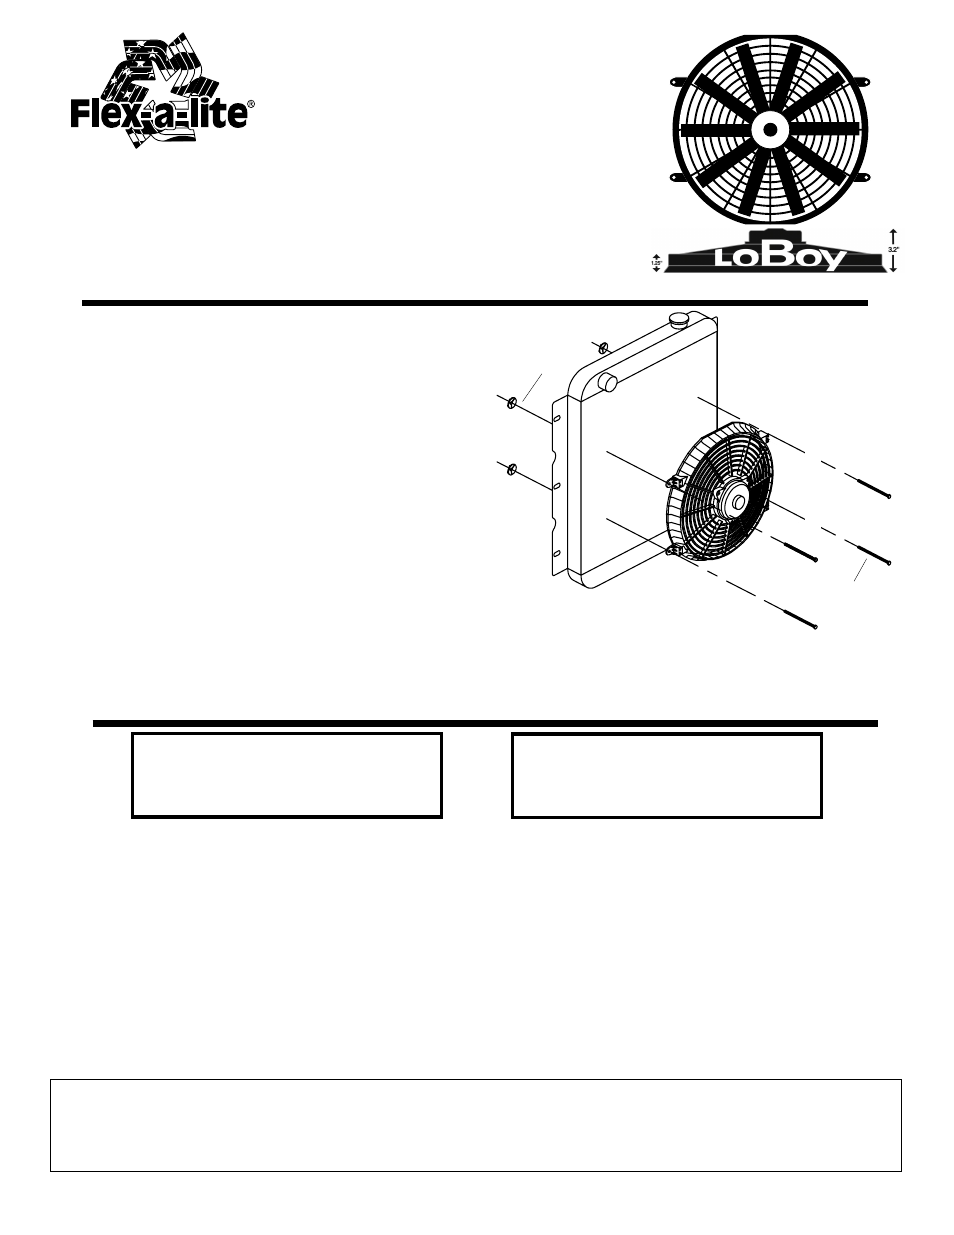 Flex A Lite 119 Pusher Loboy Electric Fan User Manual 1 Page In Line Fuse Box Also For 118 Puller